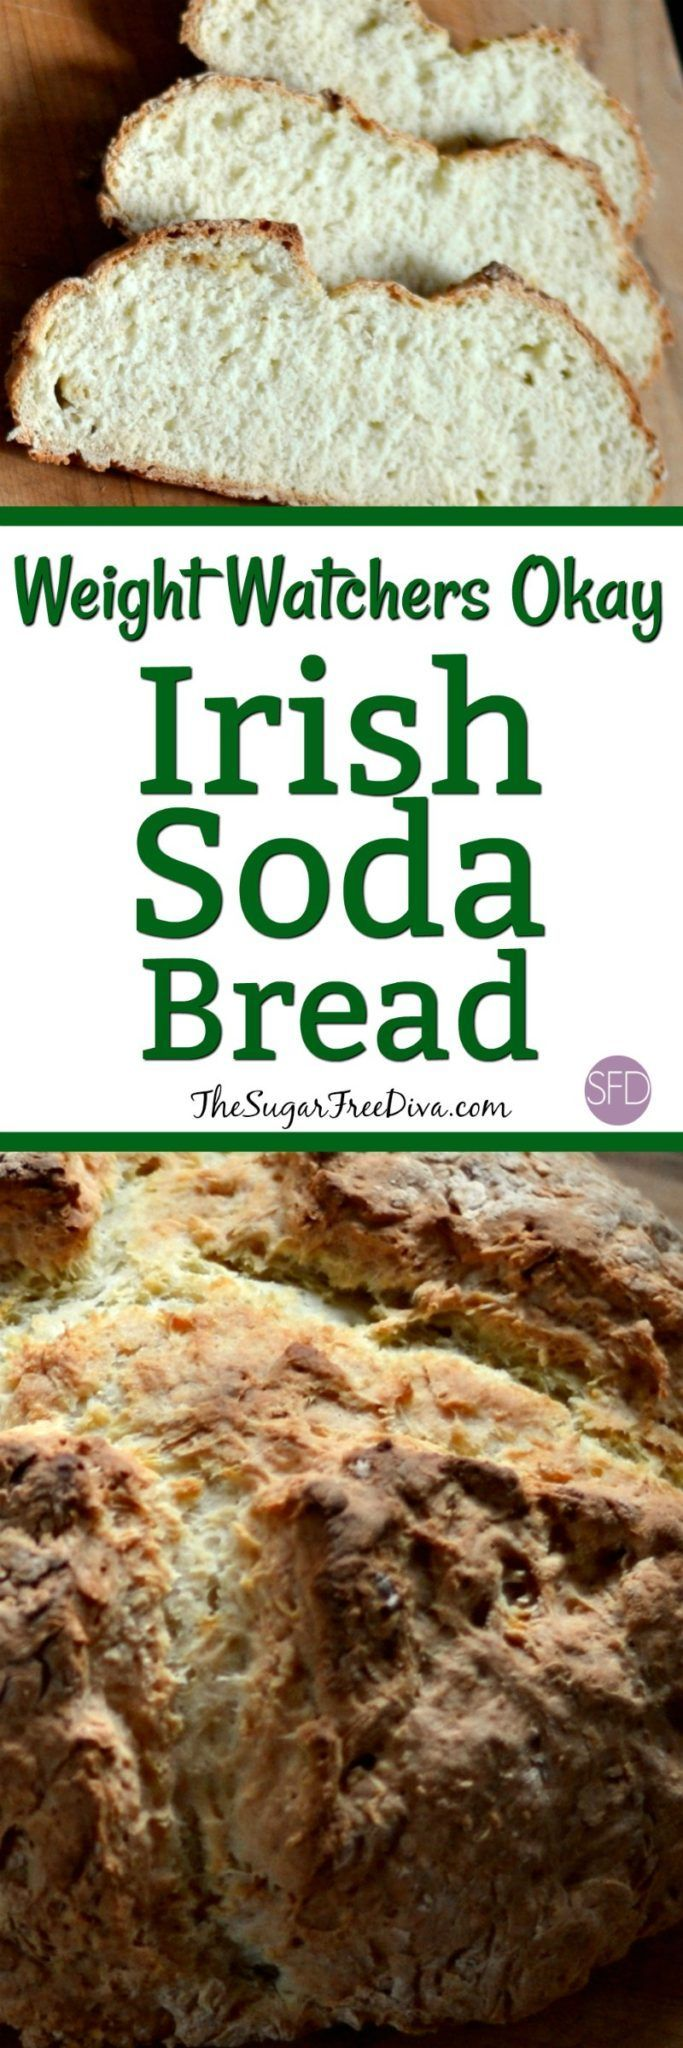 Weight Watchers Okay Irish Soda Bread--This Irish Soda Bread is Weight Watchers Okay and is also the perfect fall bread recipe that tastes good as well. The perfect appetizer, sandwich bread, or even special breakfast bread that is delicious and yummy!